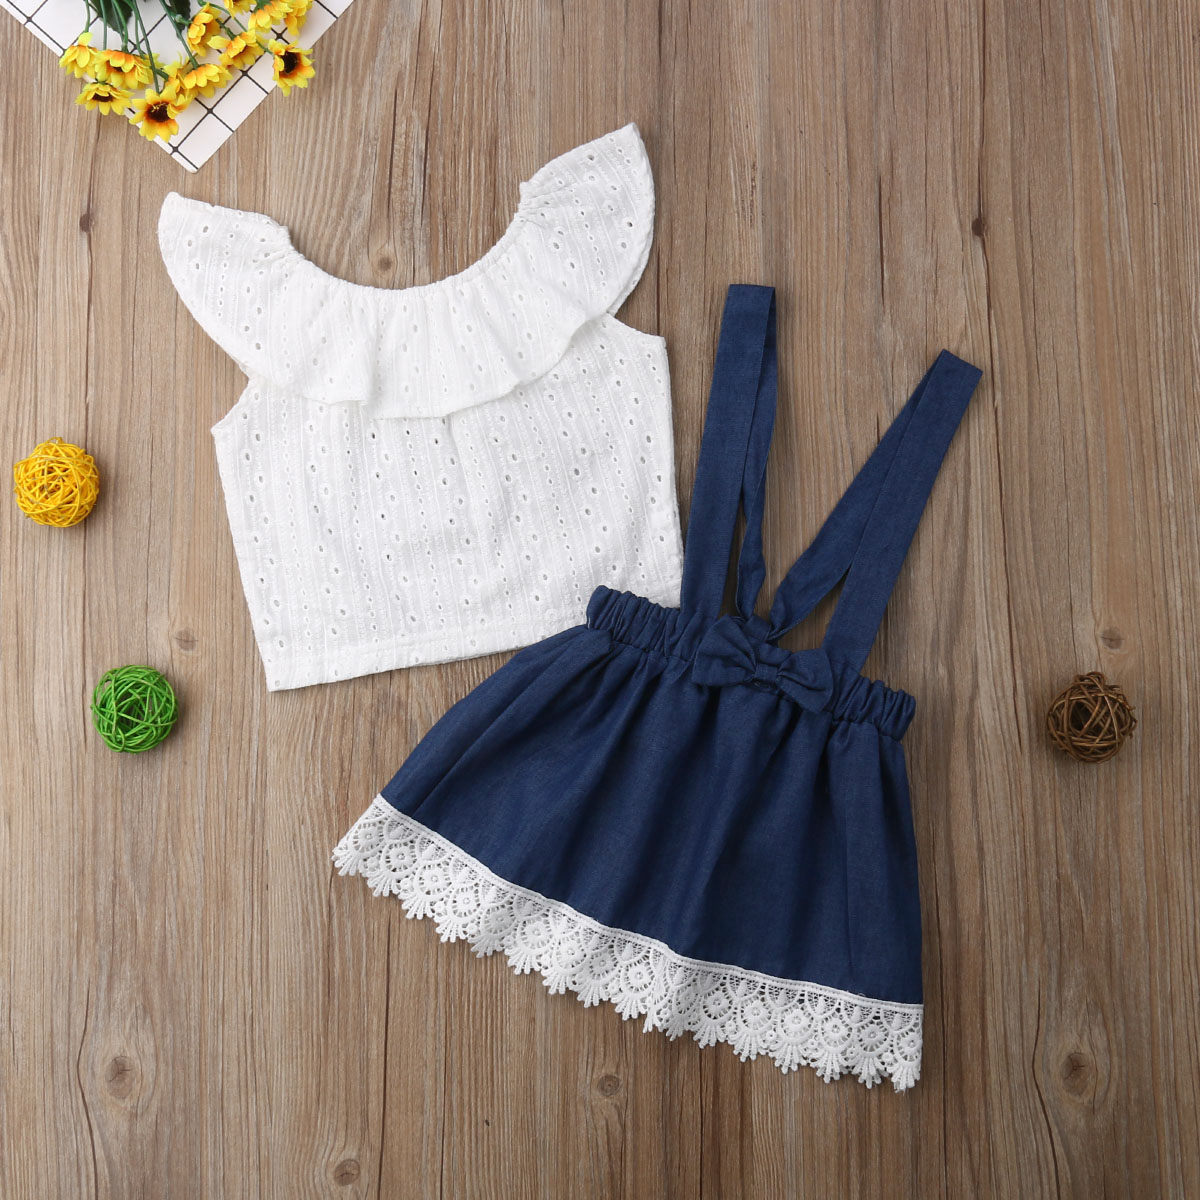 2-3 years Trendy Baby Girl Summer Beach Outfit Toddler Birthday Peach Christmas or Baby Gift DJ Baby Dress Babys A-Line Dresses - BABY MOOS UK